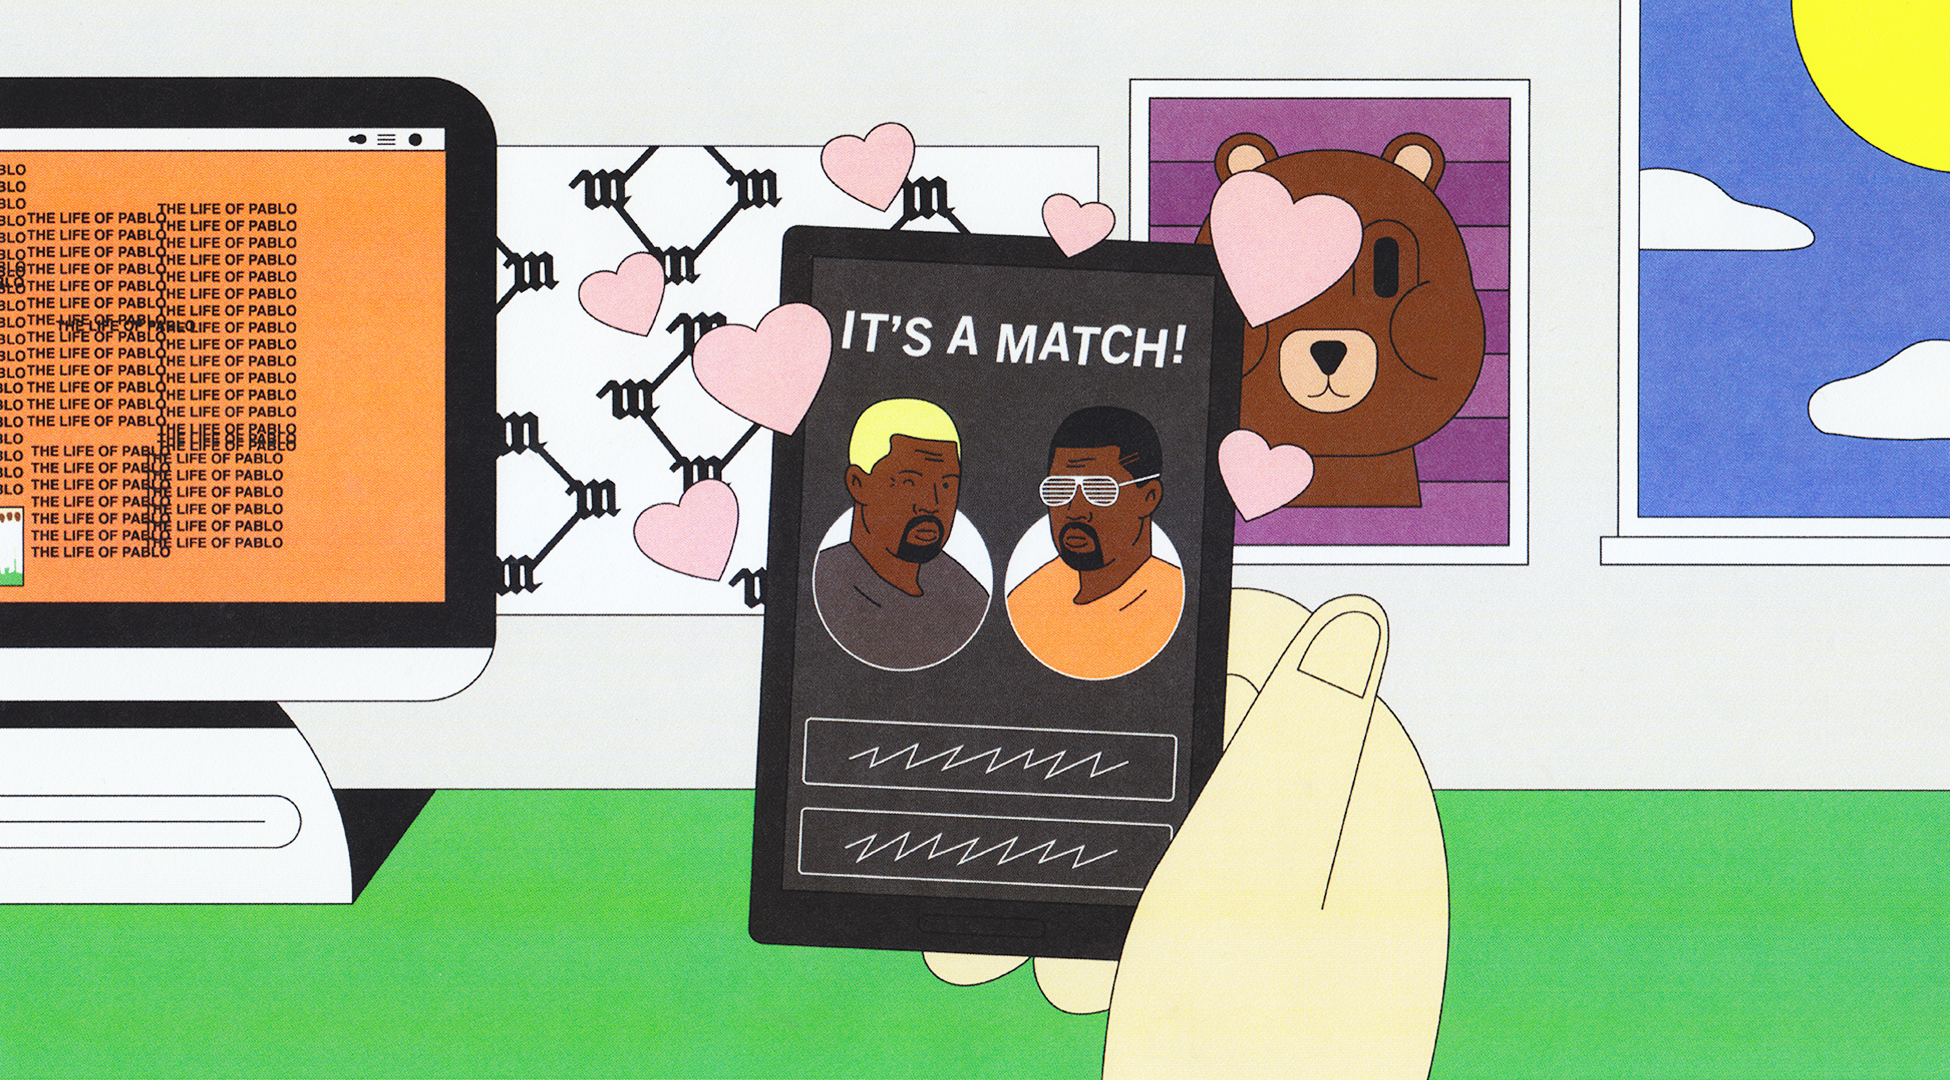 I Signed Up for the Kanye Dating Site and Swiped Right into a Weird Mystery  - Noisey 1c9c5d38e33d